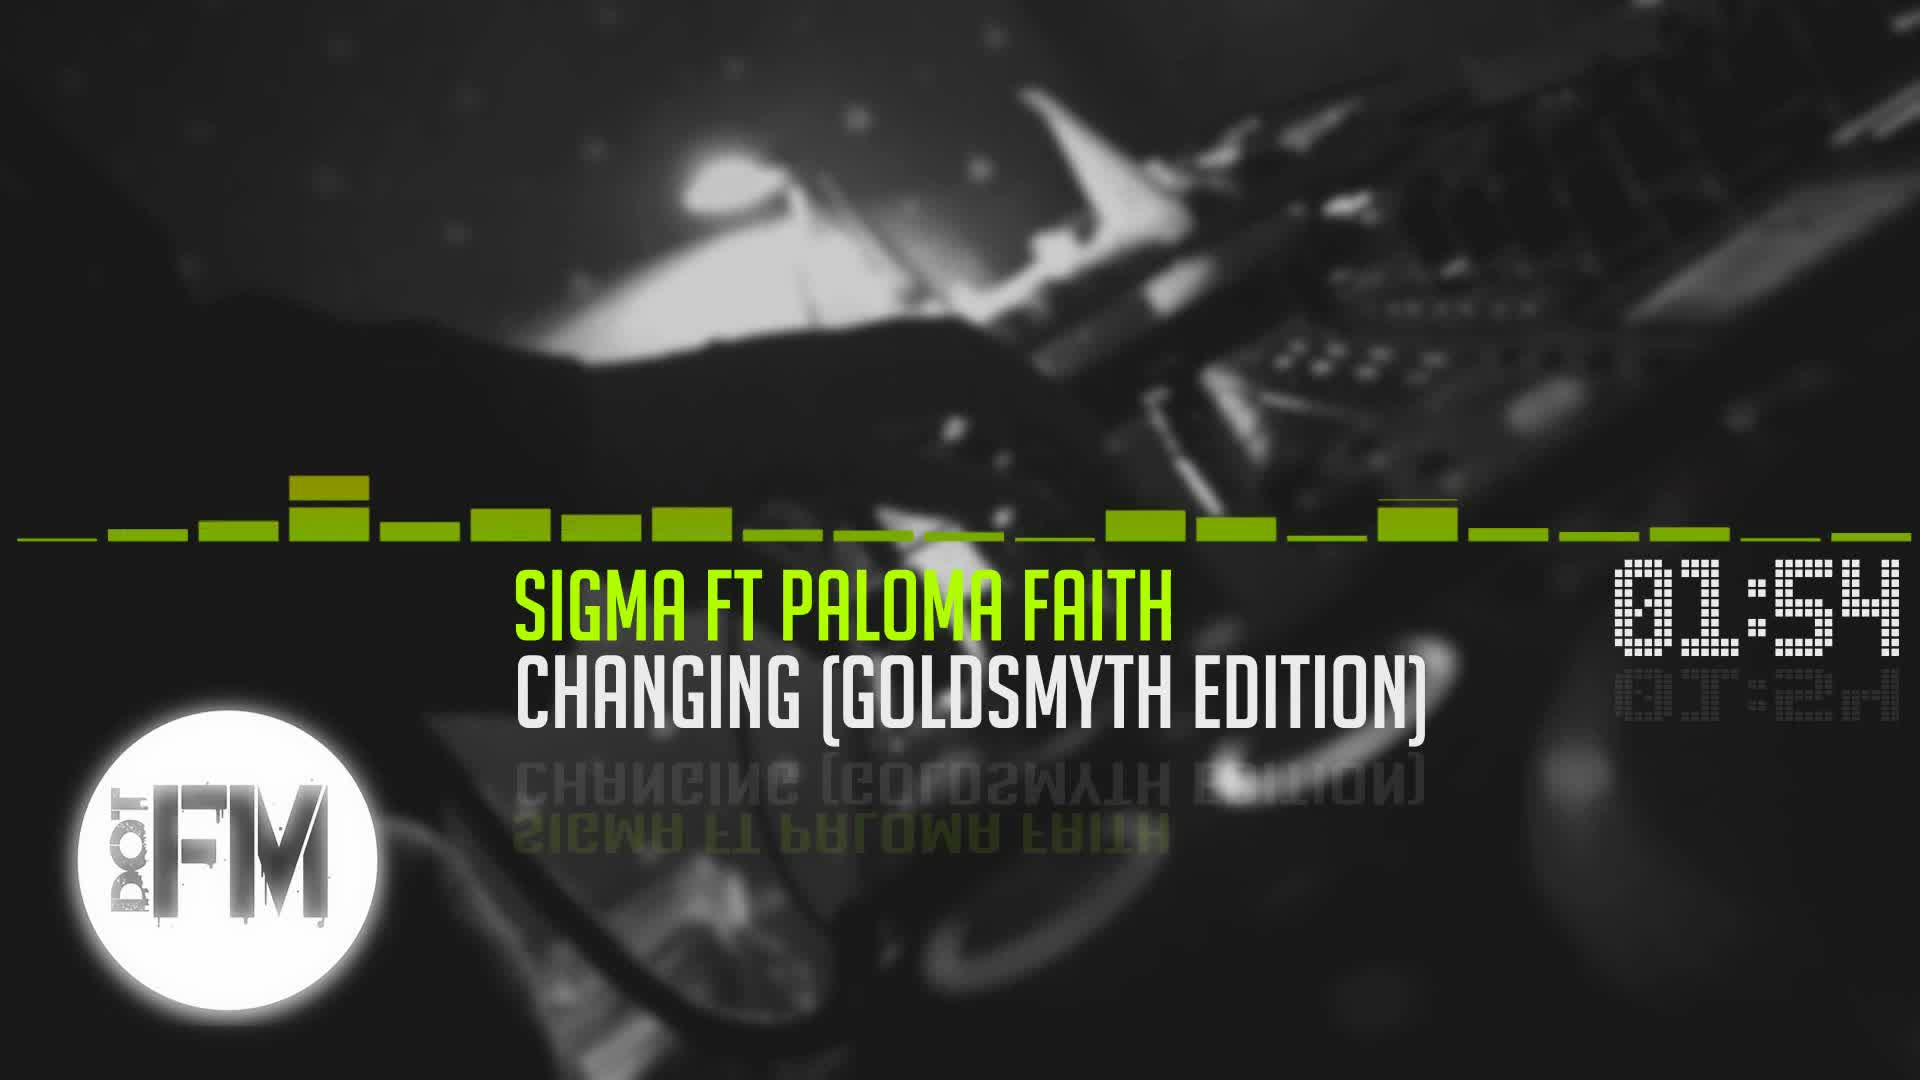 Sigma ft. Paloma Faith - Changing (Goldsmyth Edition)